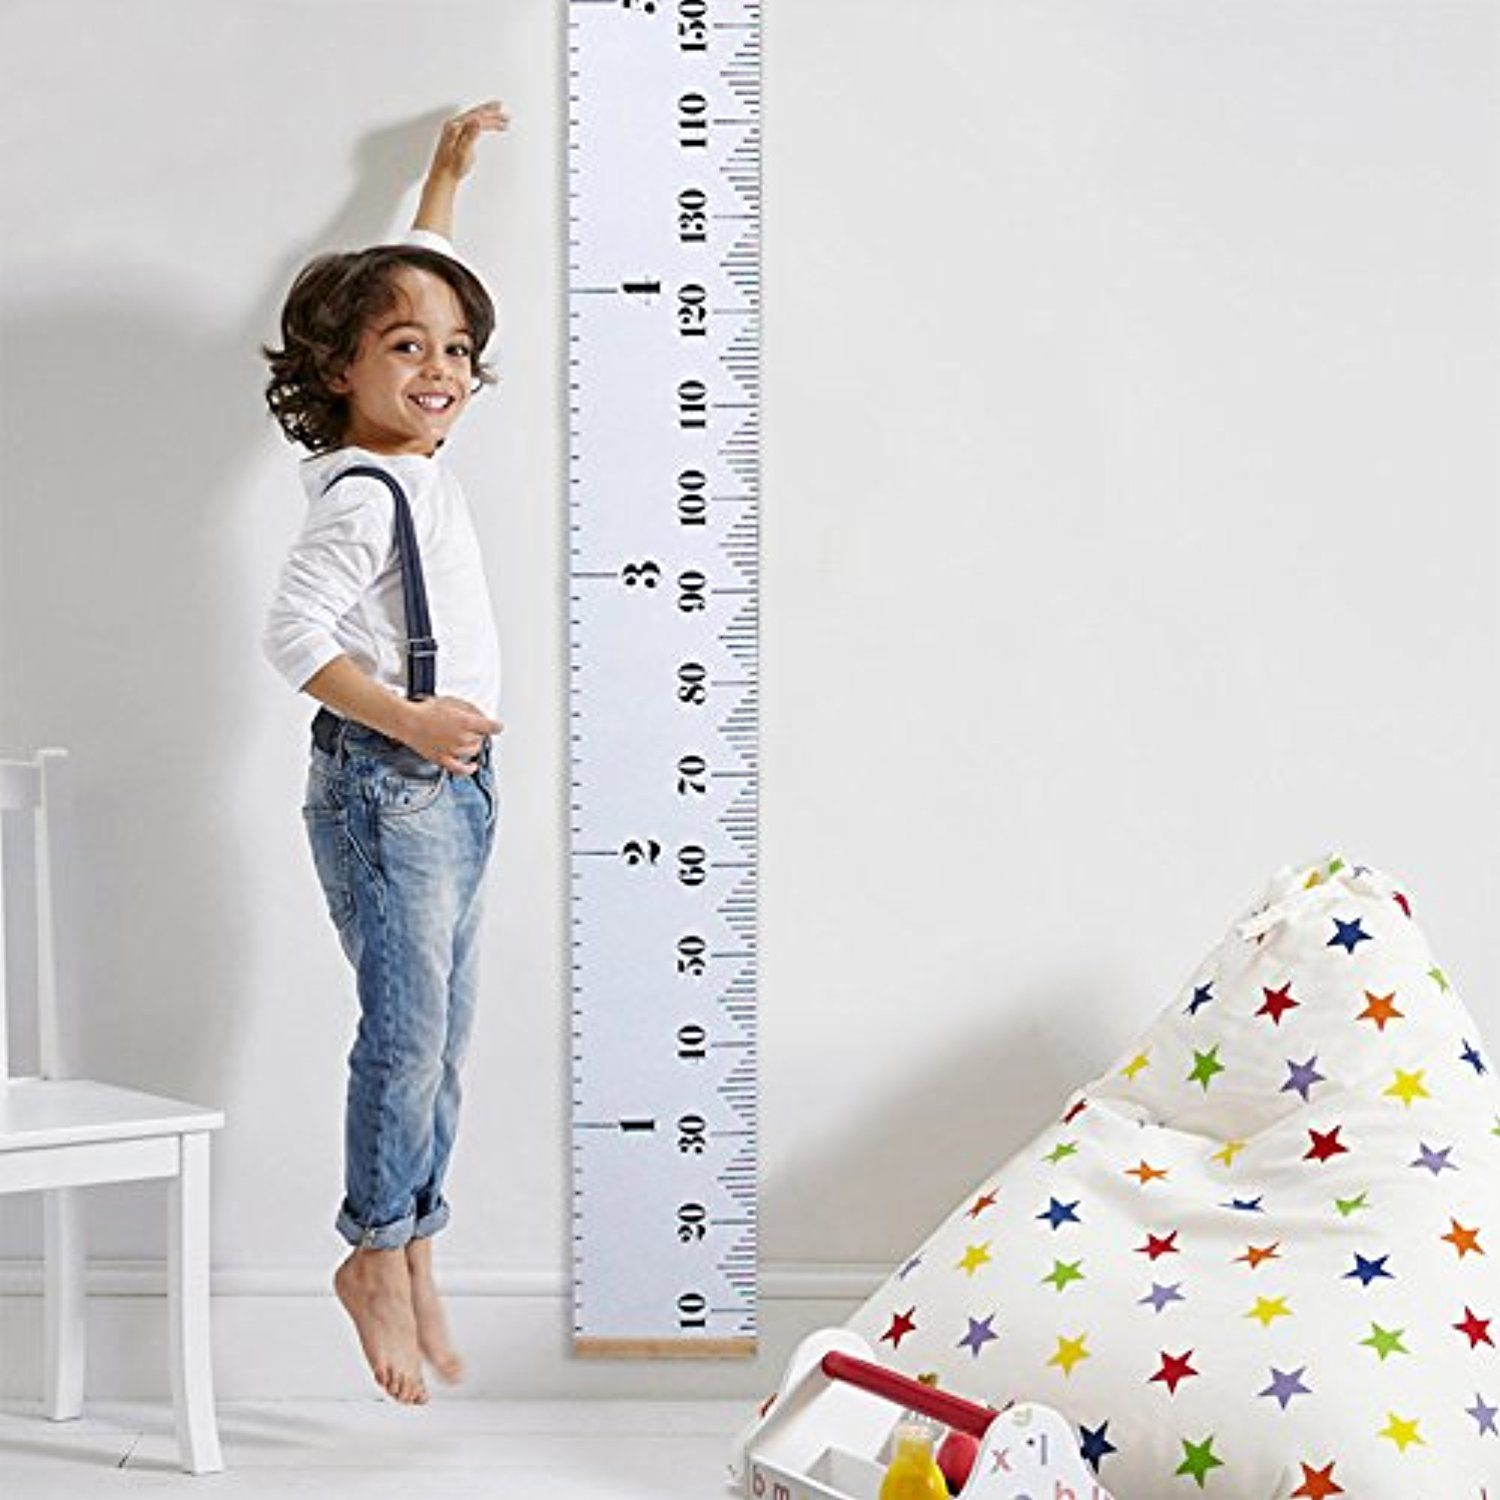 Baby height growth chart wall hanging ruler height measurement chart baby height growth chart wall hanging ruler height measurement chart with wood frame brief style geenschuldenfo Gallery